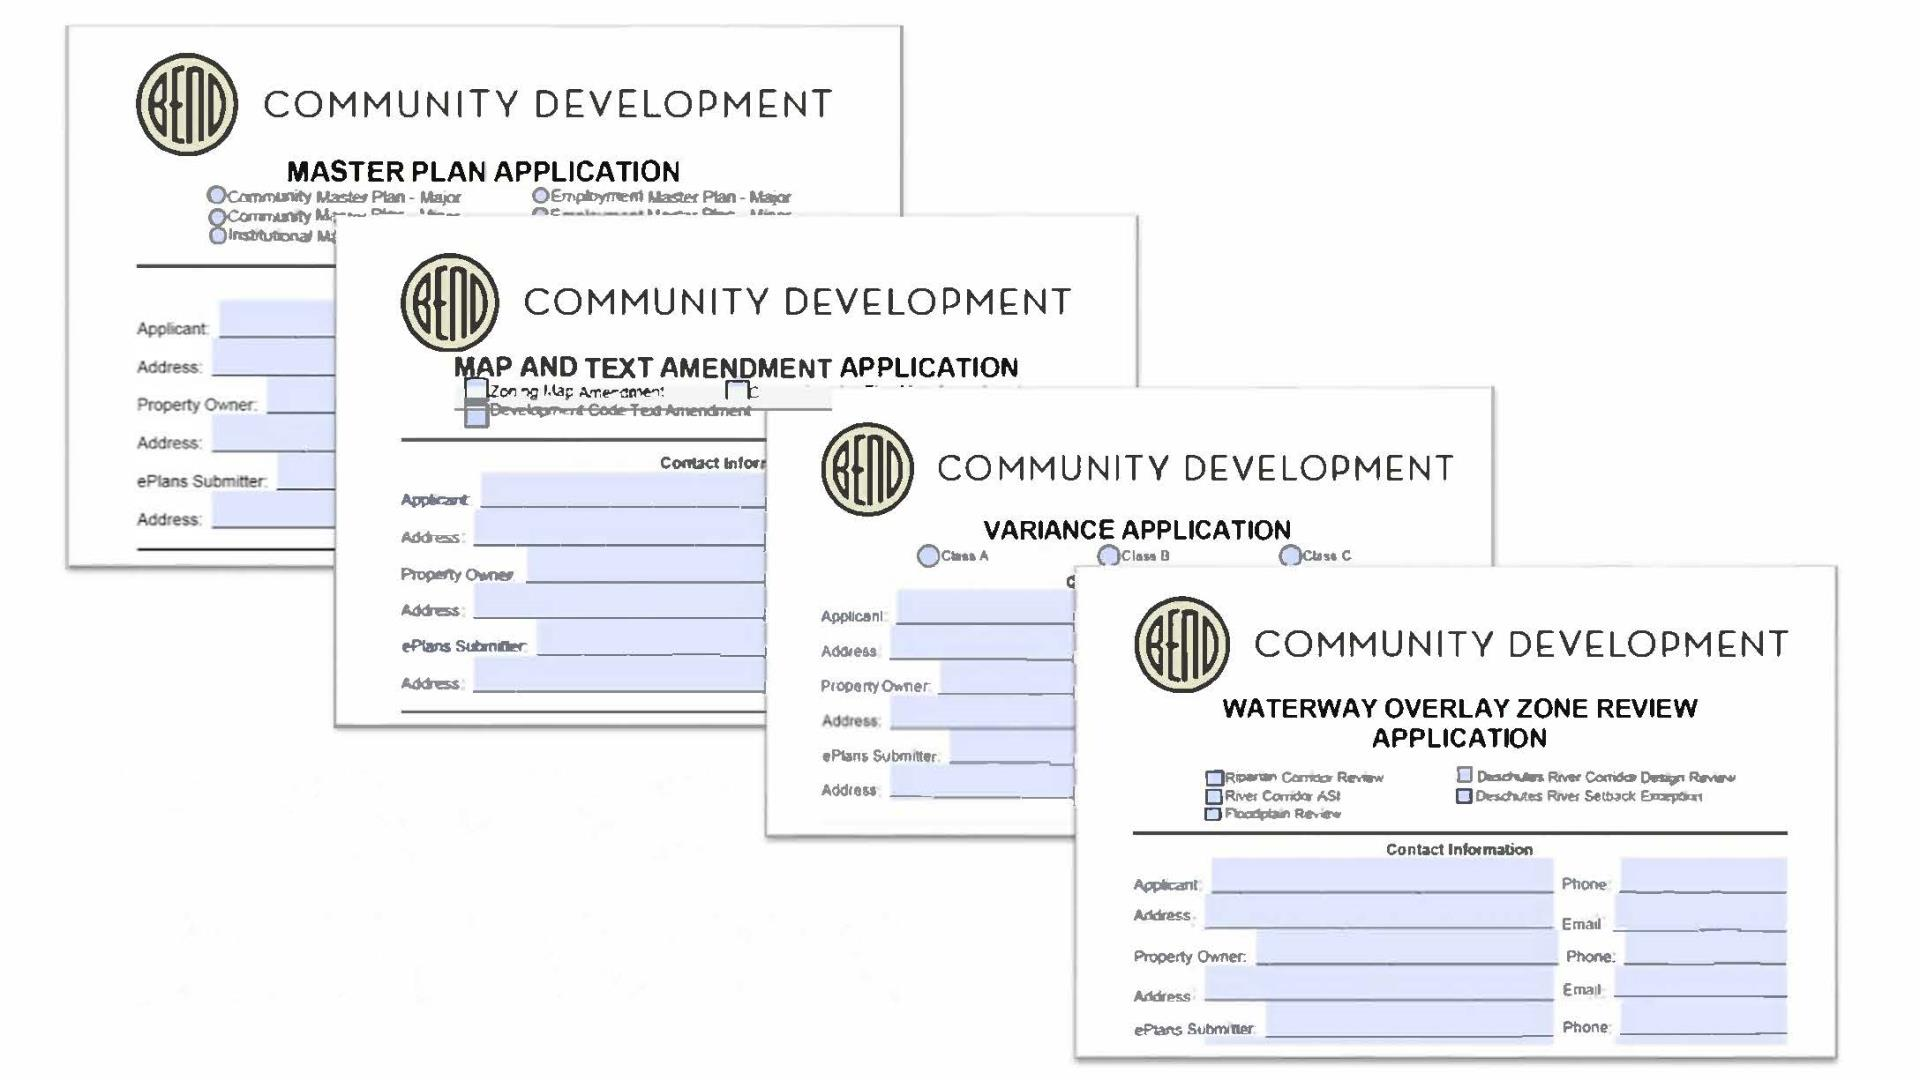 Image of applications which Planning Commission typically reviews